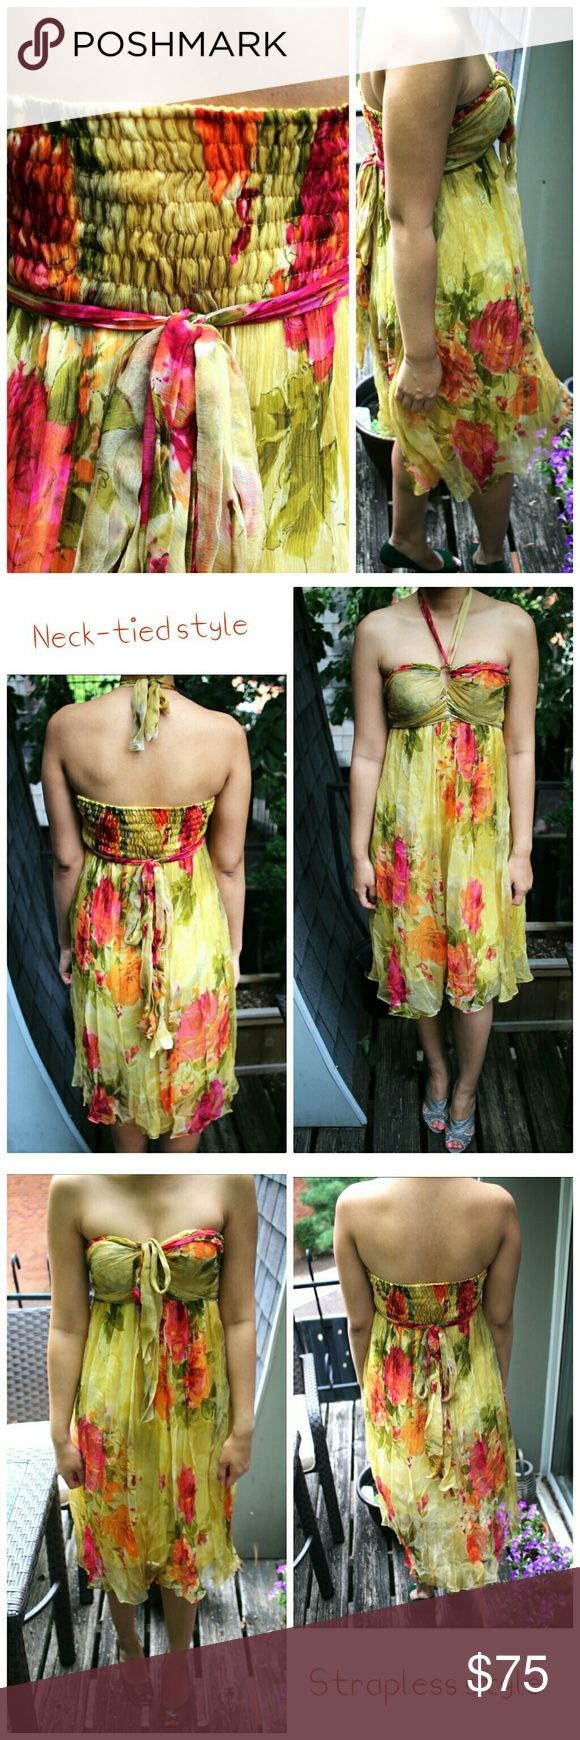 The dress how to see it both ways - 2 Style Yellow Formal Dress